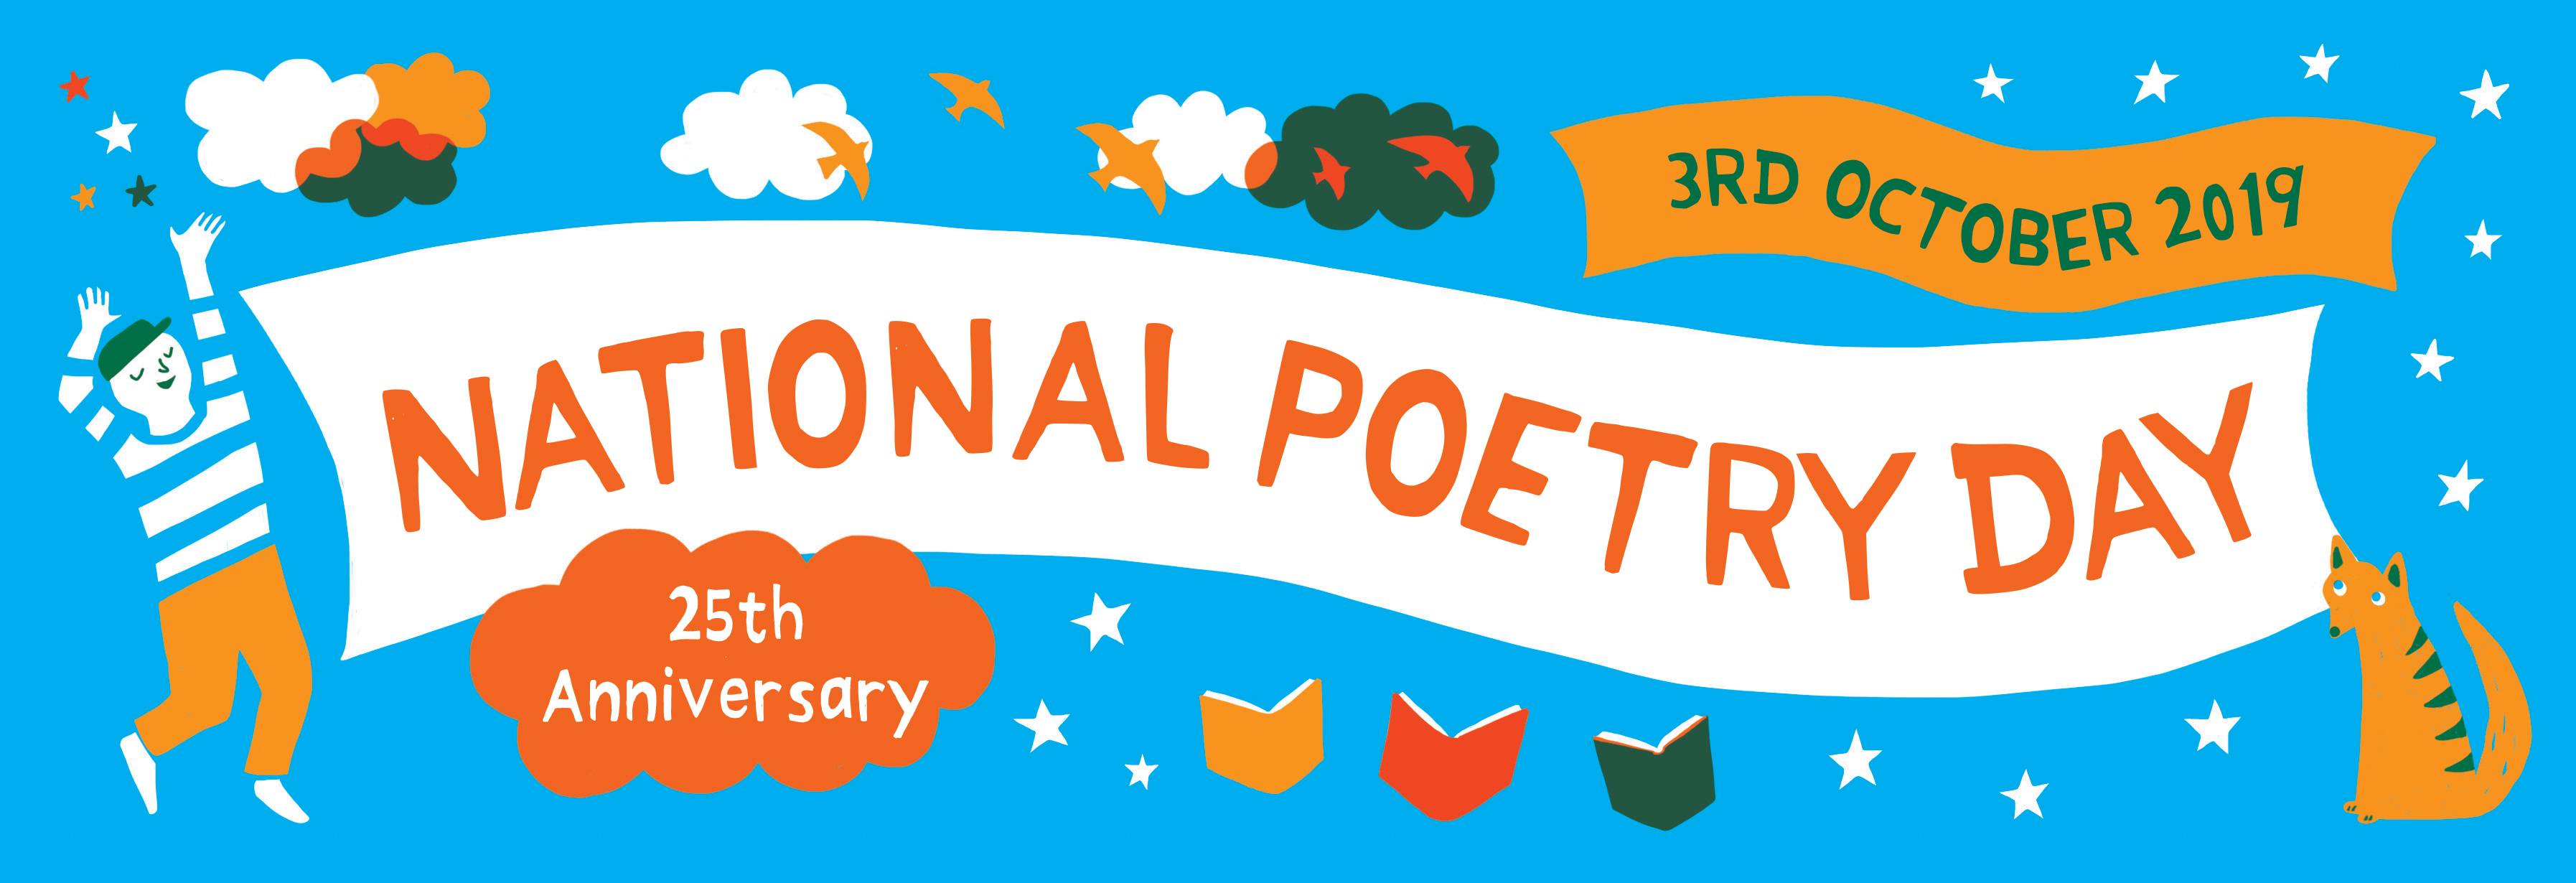 National Poetry Day 2019 - banner